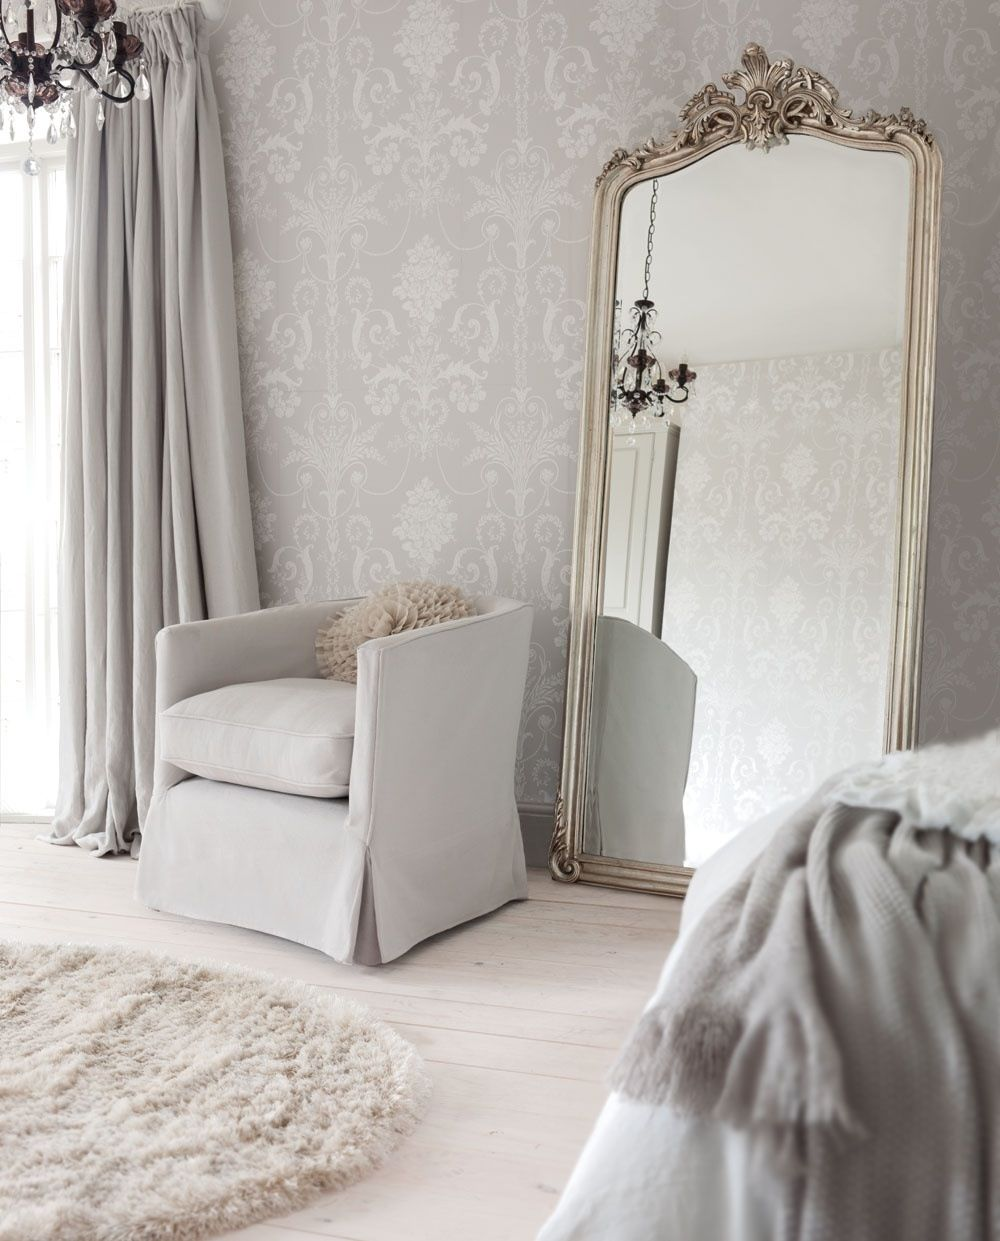 Bedroom Ideas Laura Ashley laura ashley - i bought this wallpaper but still need to put it up